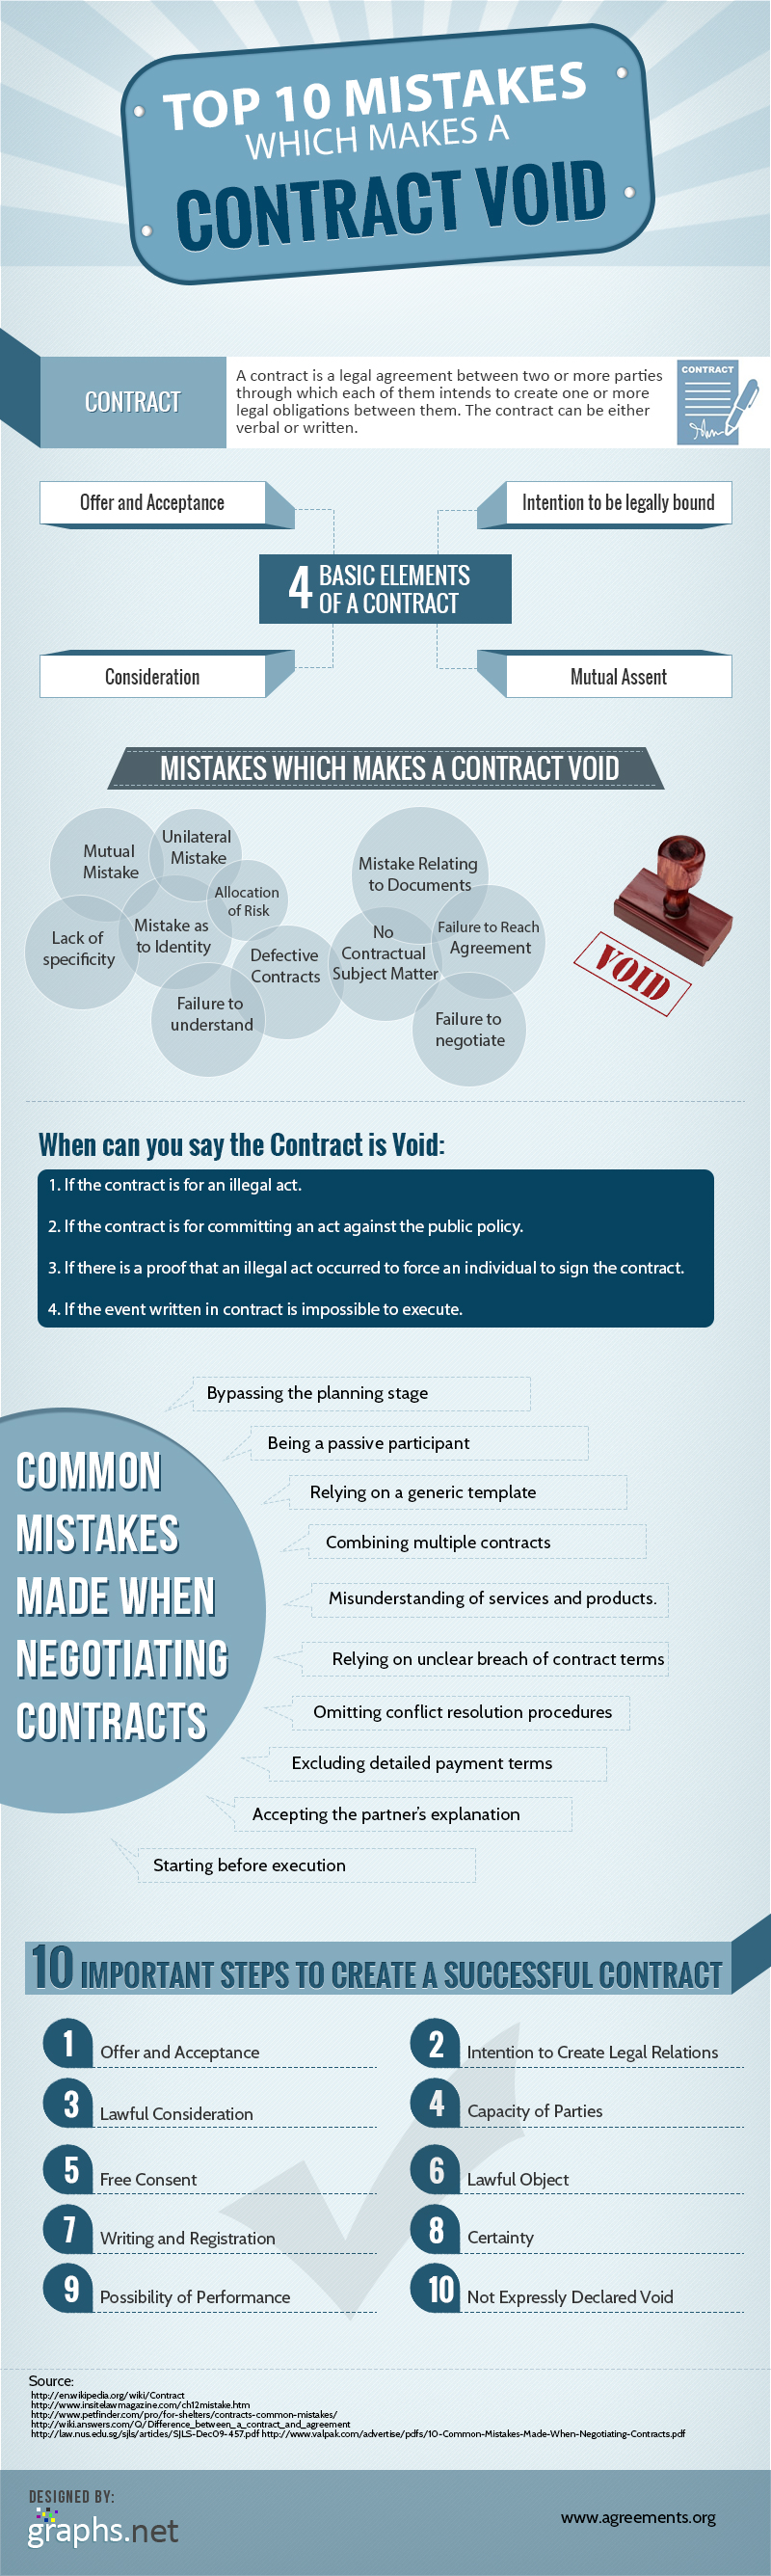 Top 10 mistakes that results in an invalid contract